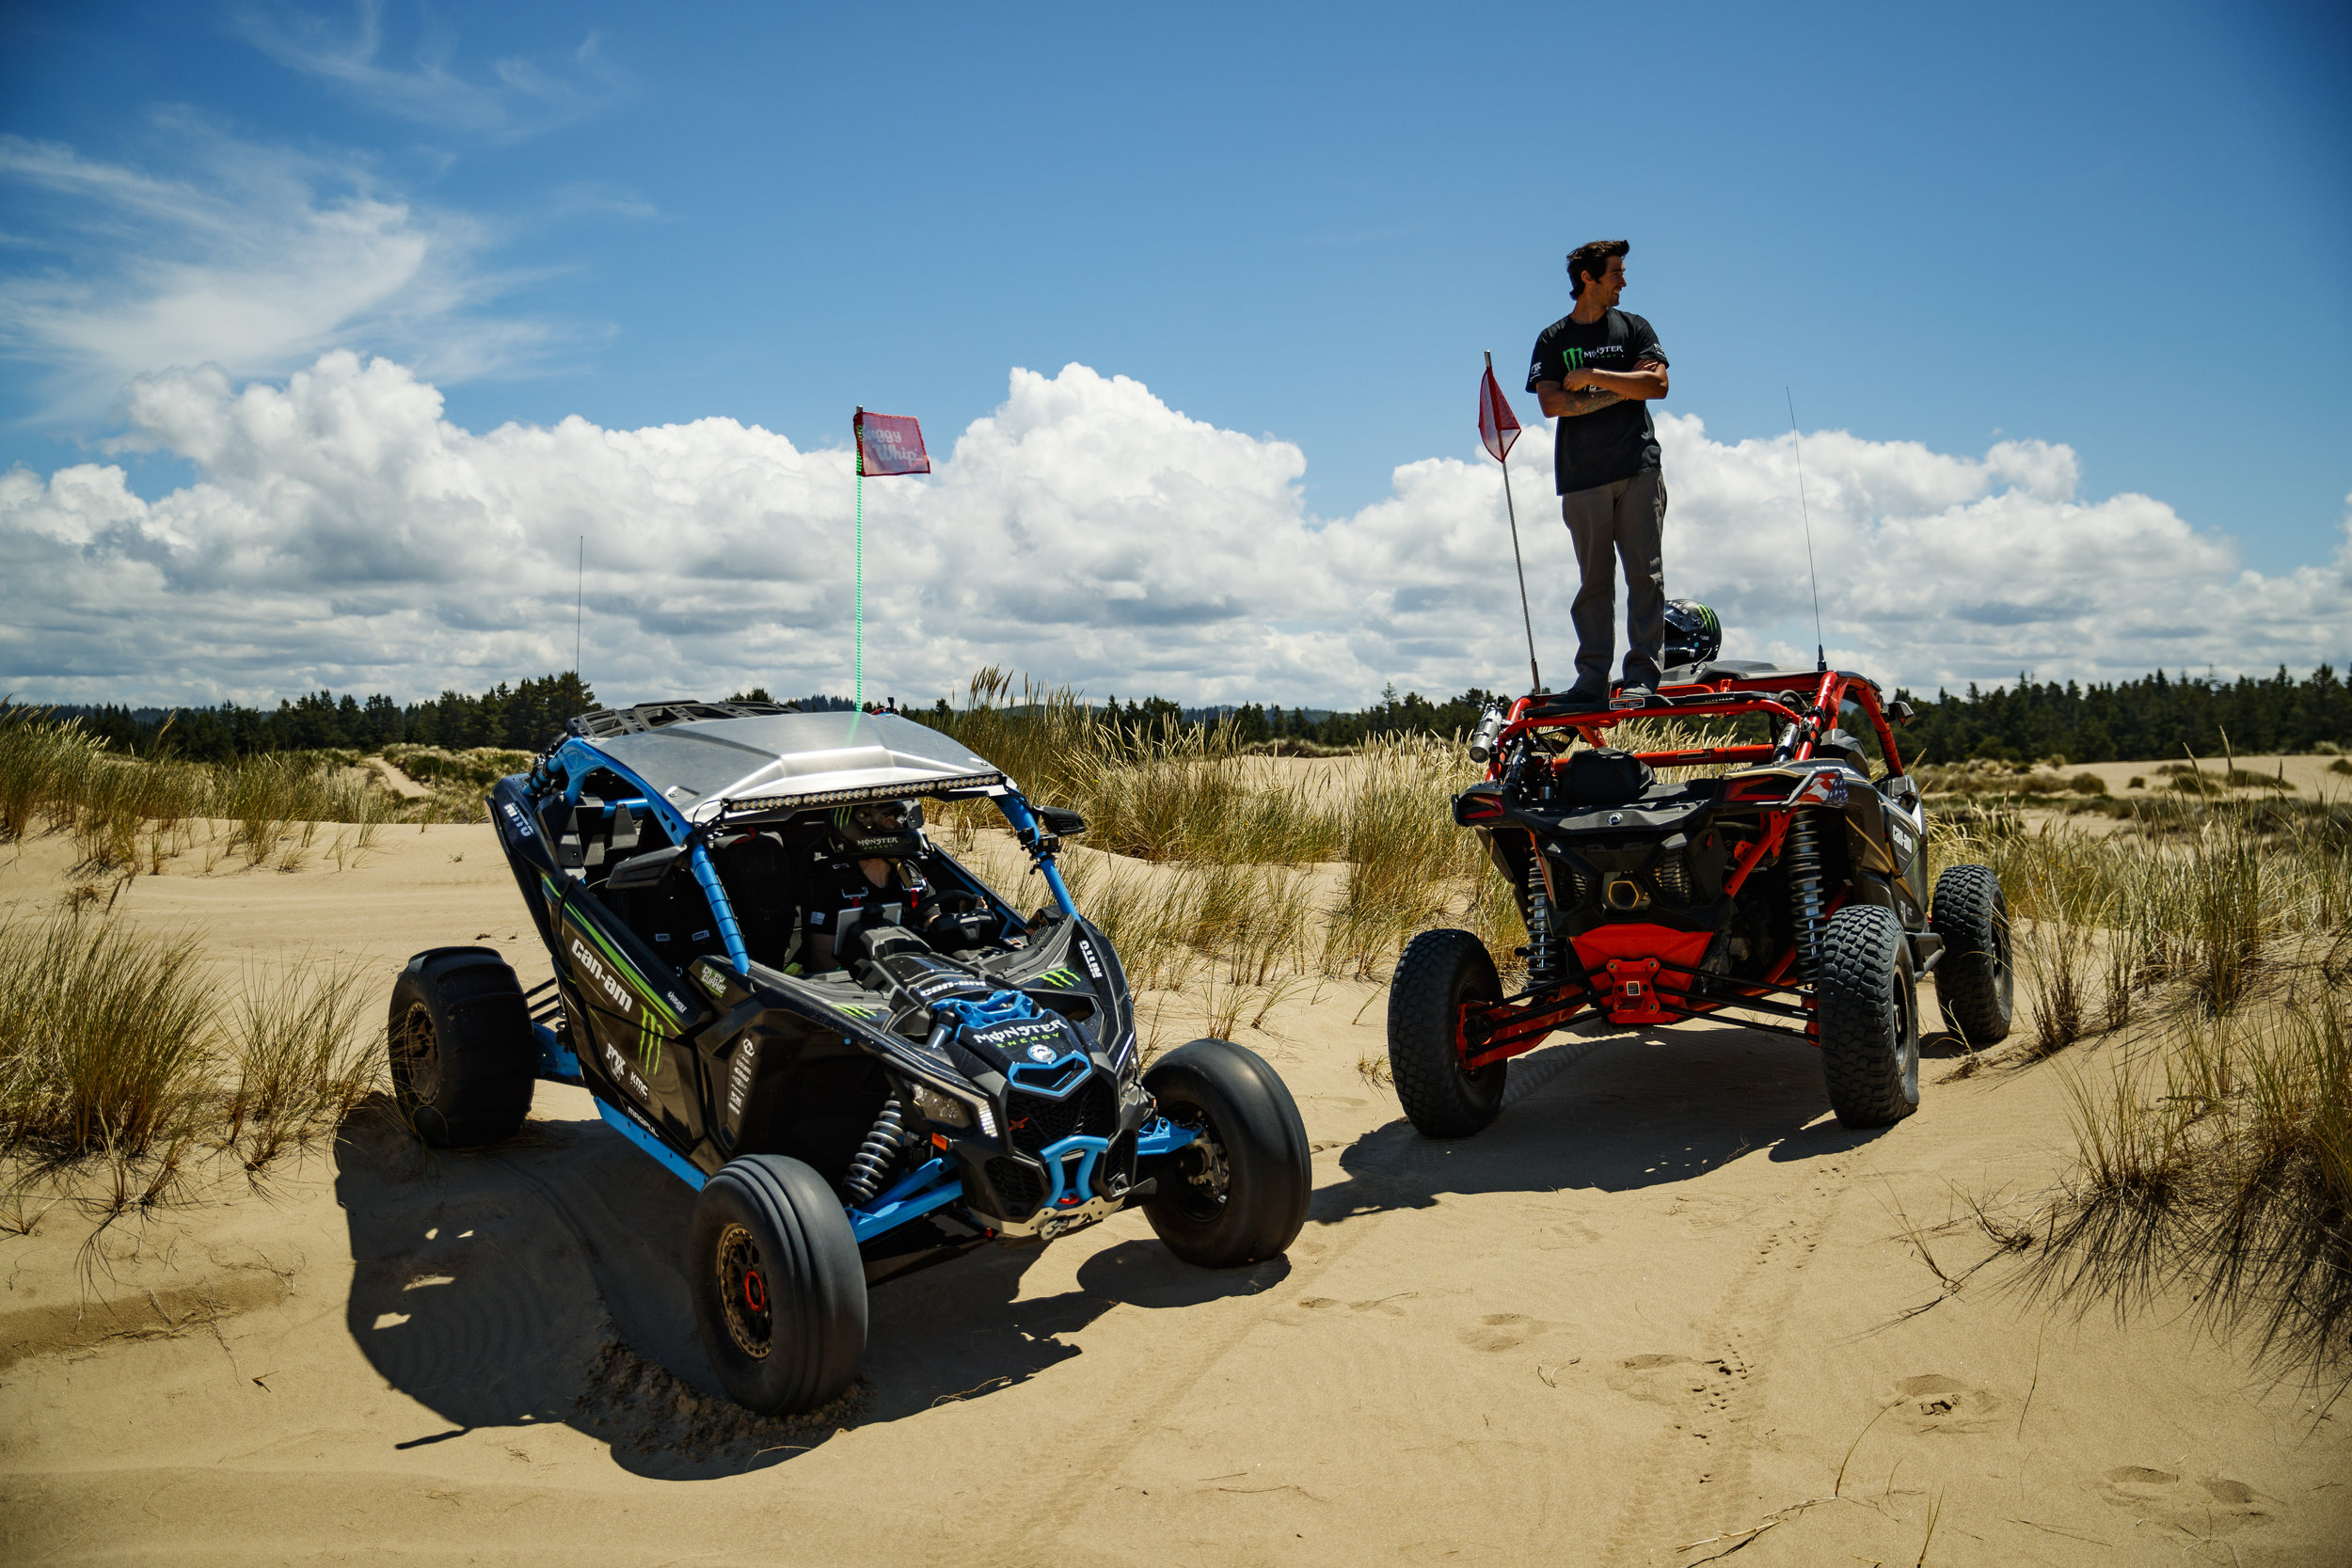 6_29_CaseyCurrie_UTVTakeover_CoosBay_Oregon_Can-Am_001.jpg